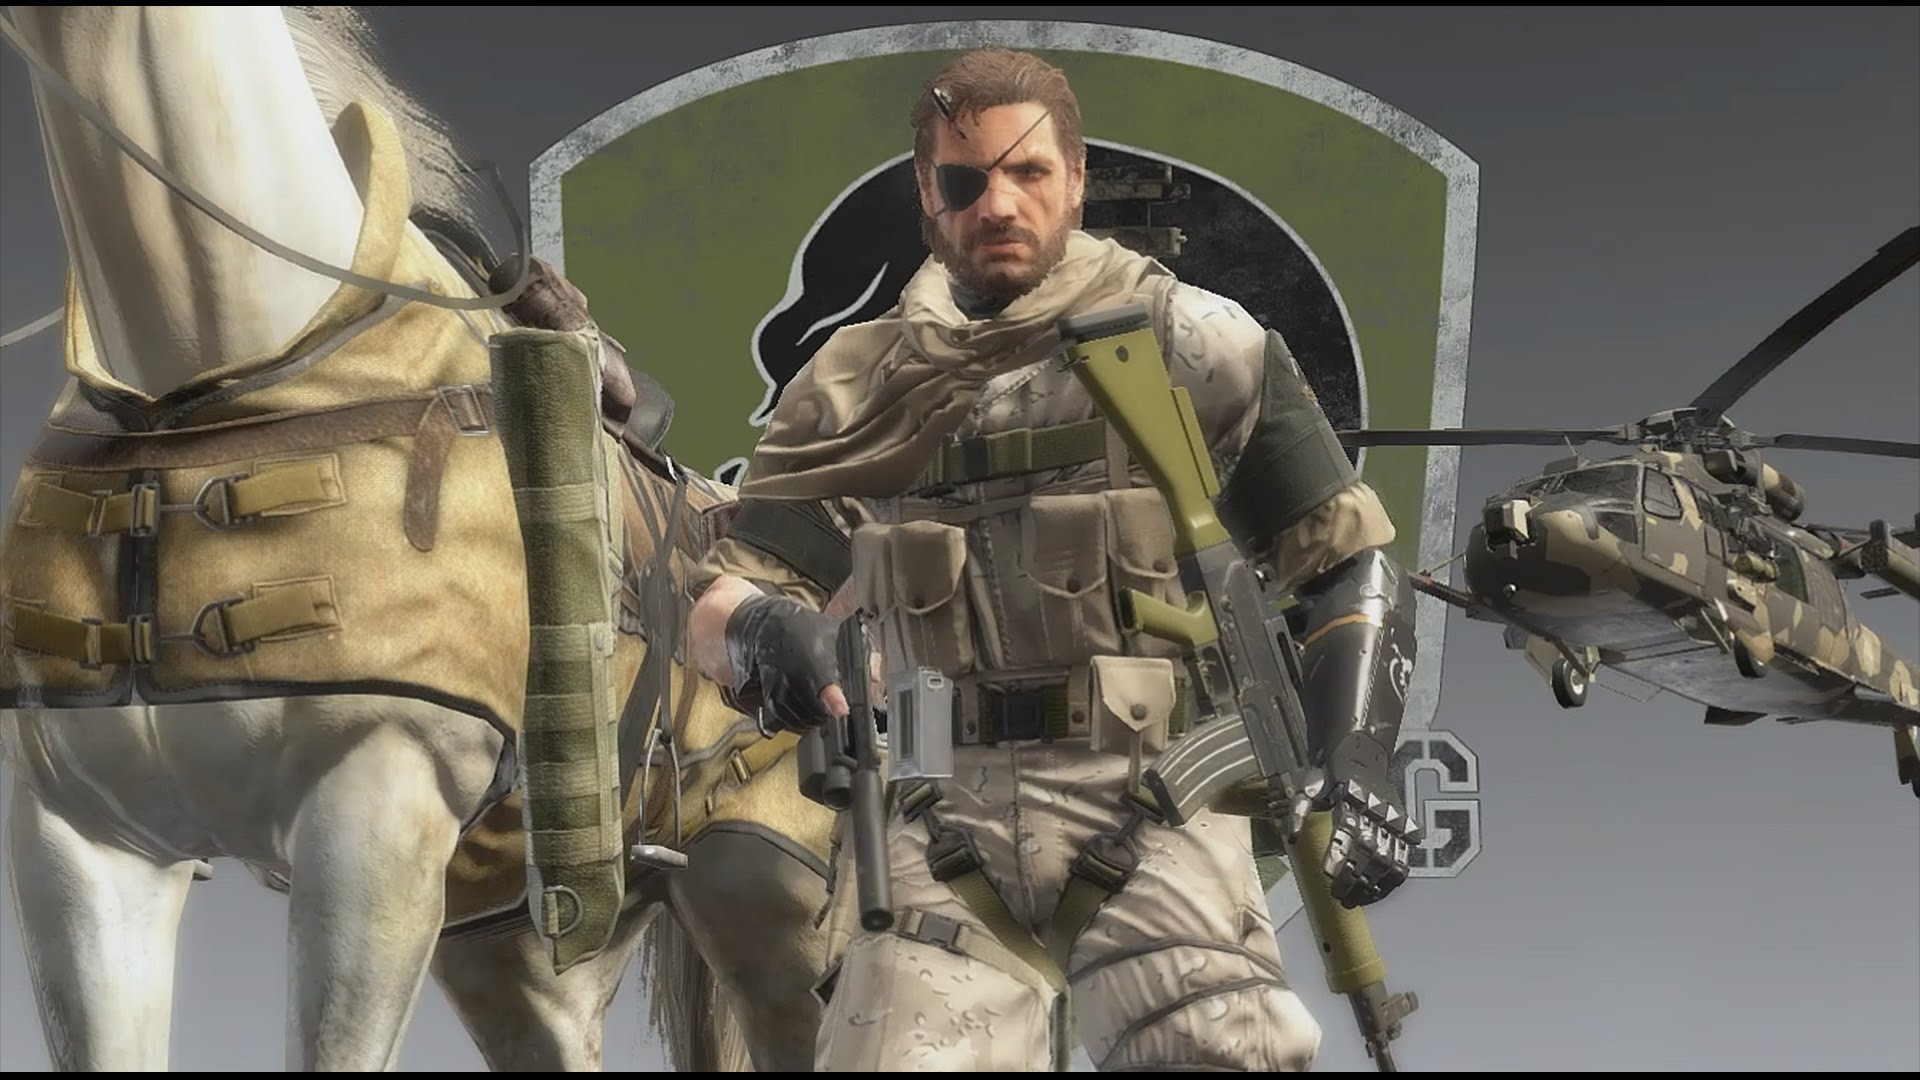 GAME PLAY DEMO - FREE INFILTRATION - METAL GEAR SOLID V: THE PHANTOM PAIN